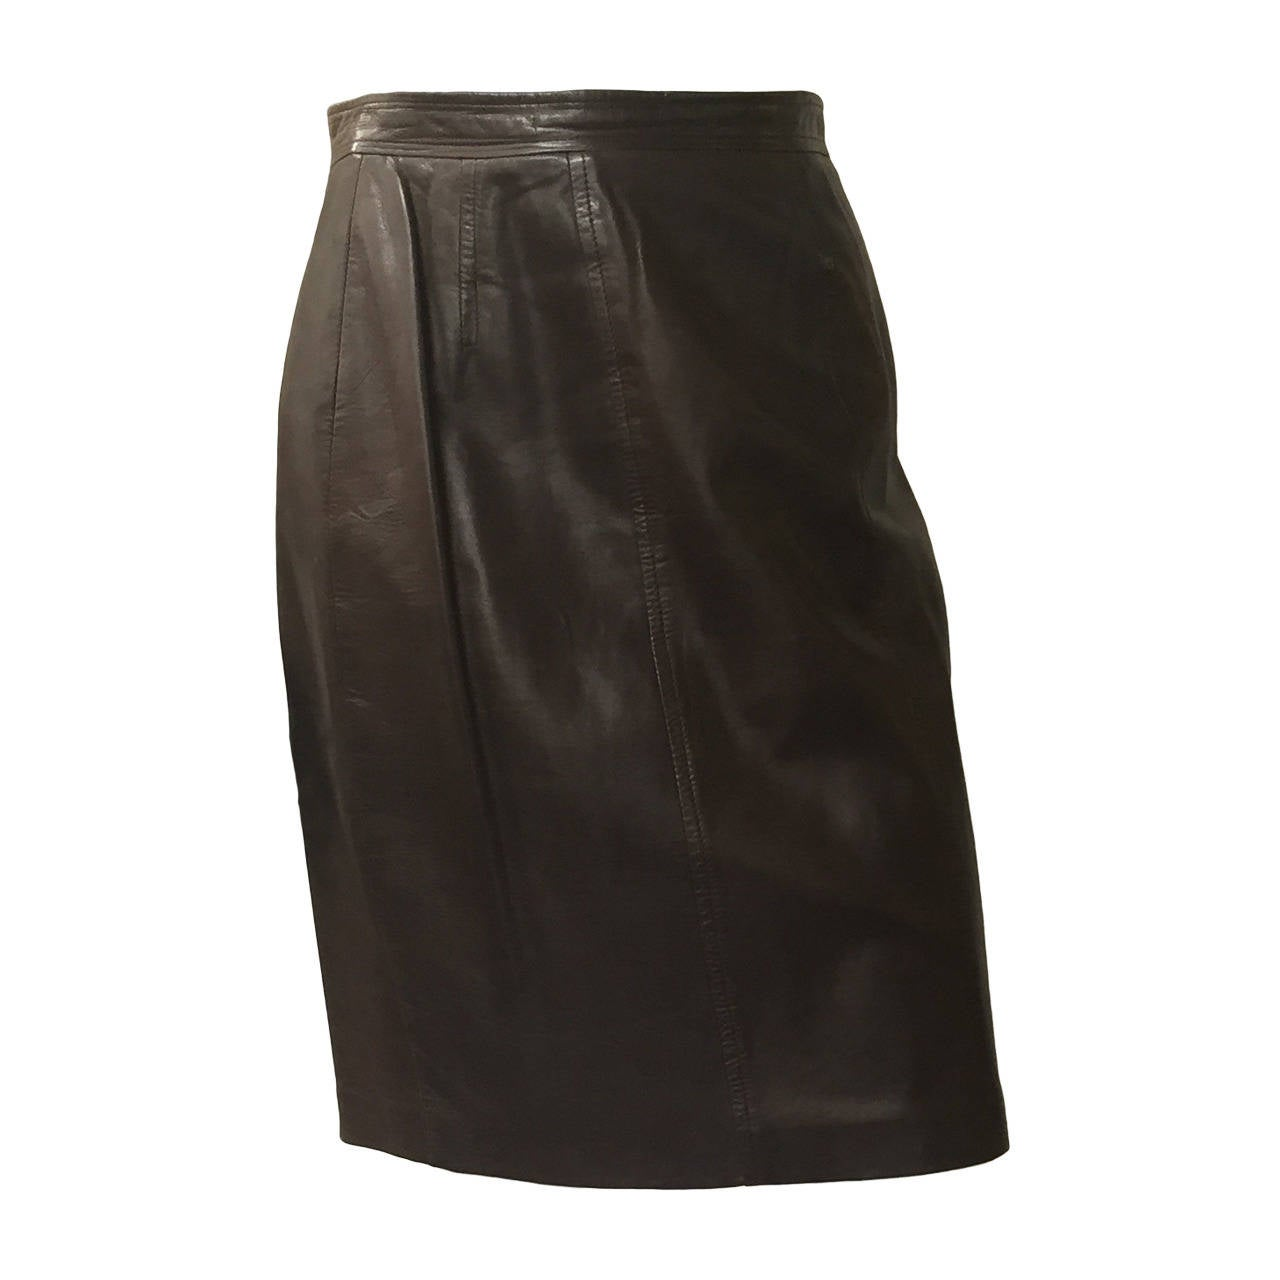 chanel 80s brown leather skirt size 6 for sale at 1stdibs